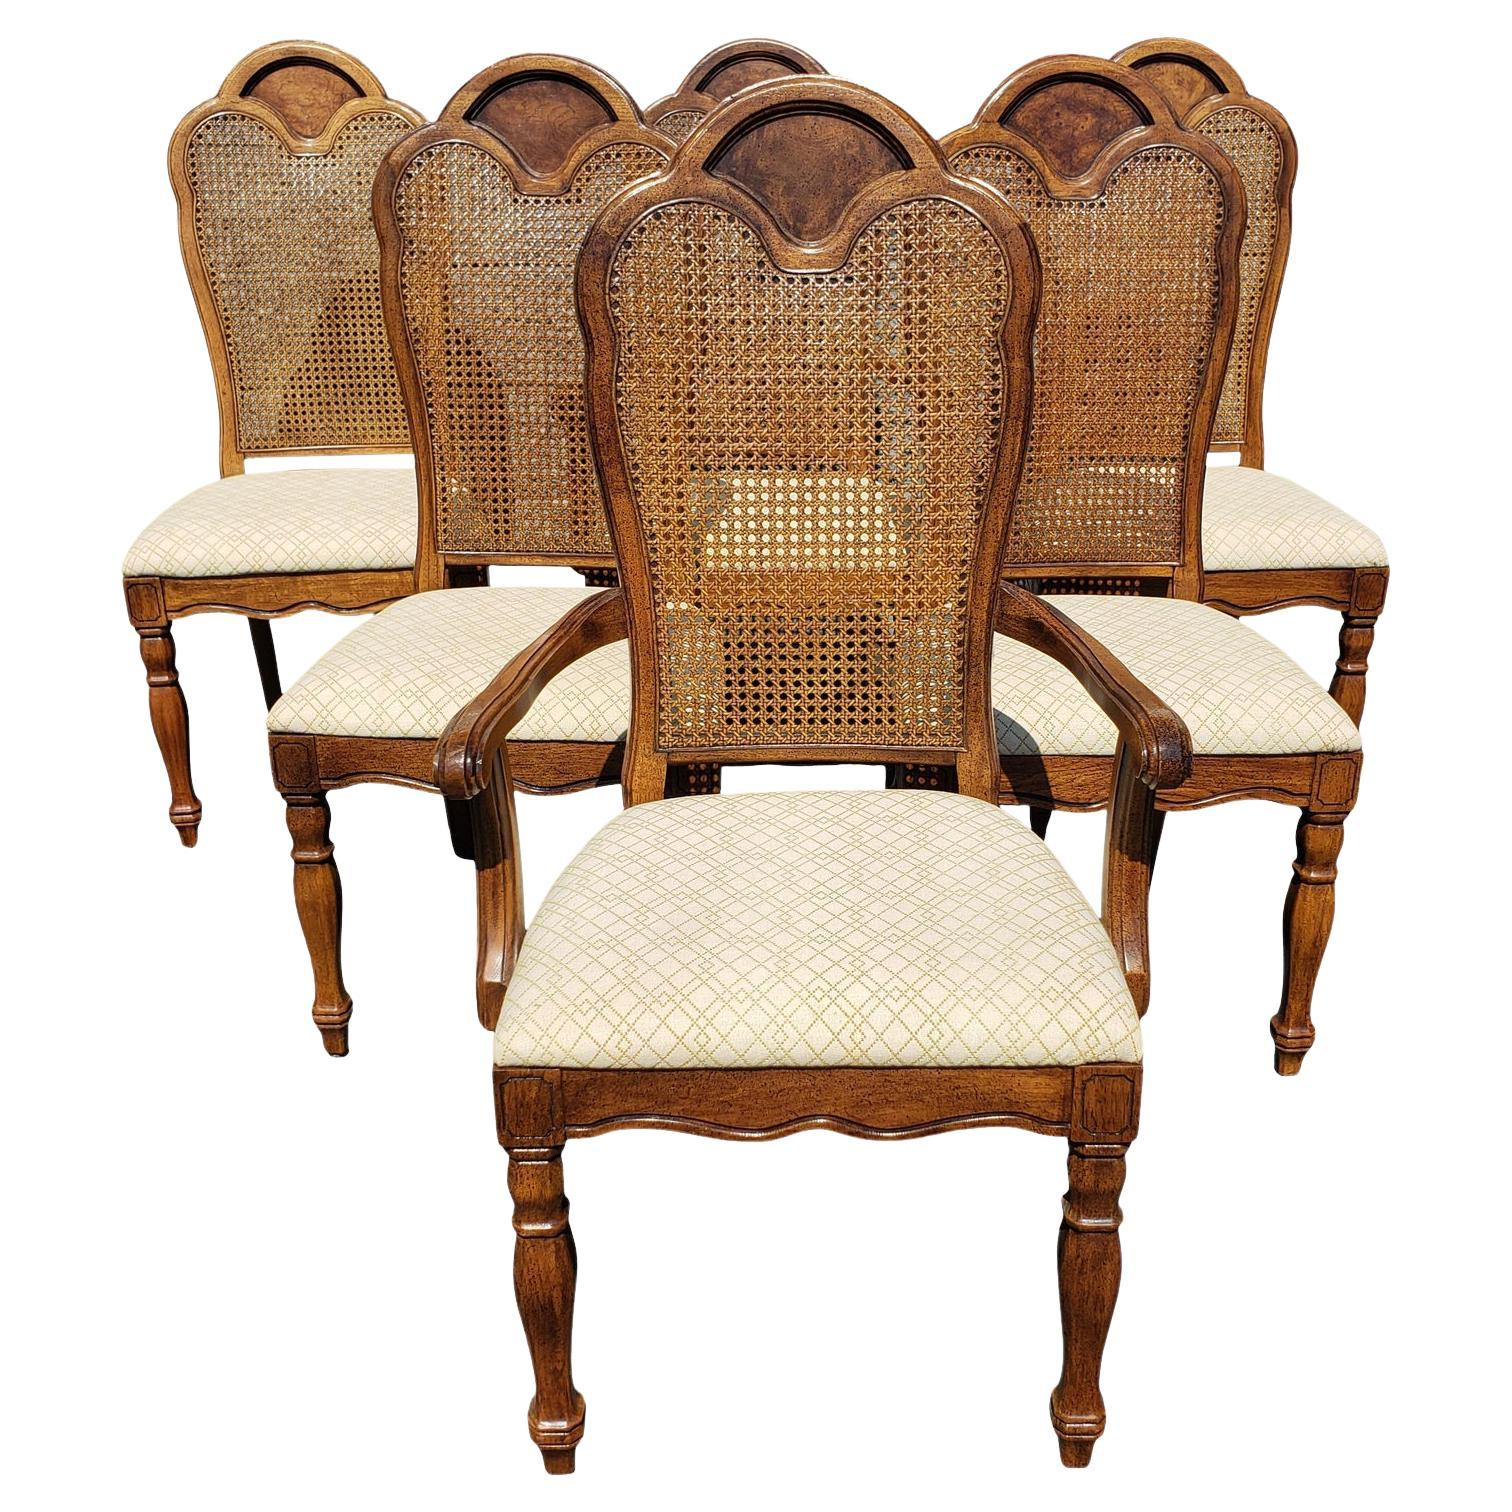 French Country Thomasville Walnut Cane Back Dining Room Chairs, Set of 6